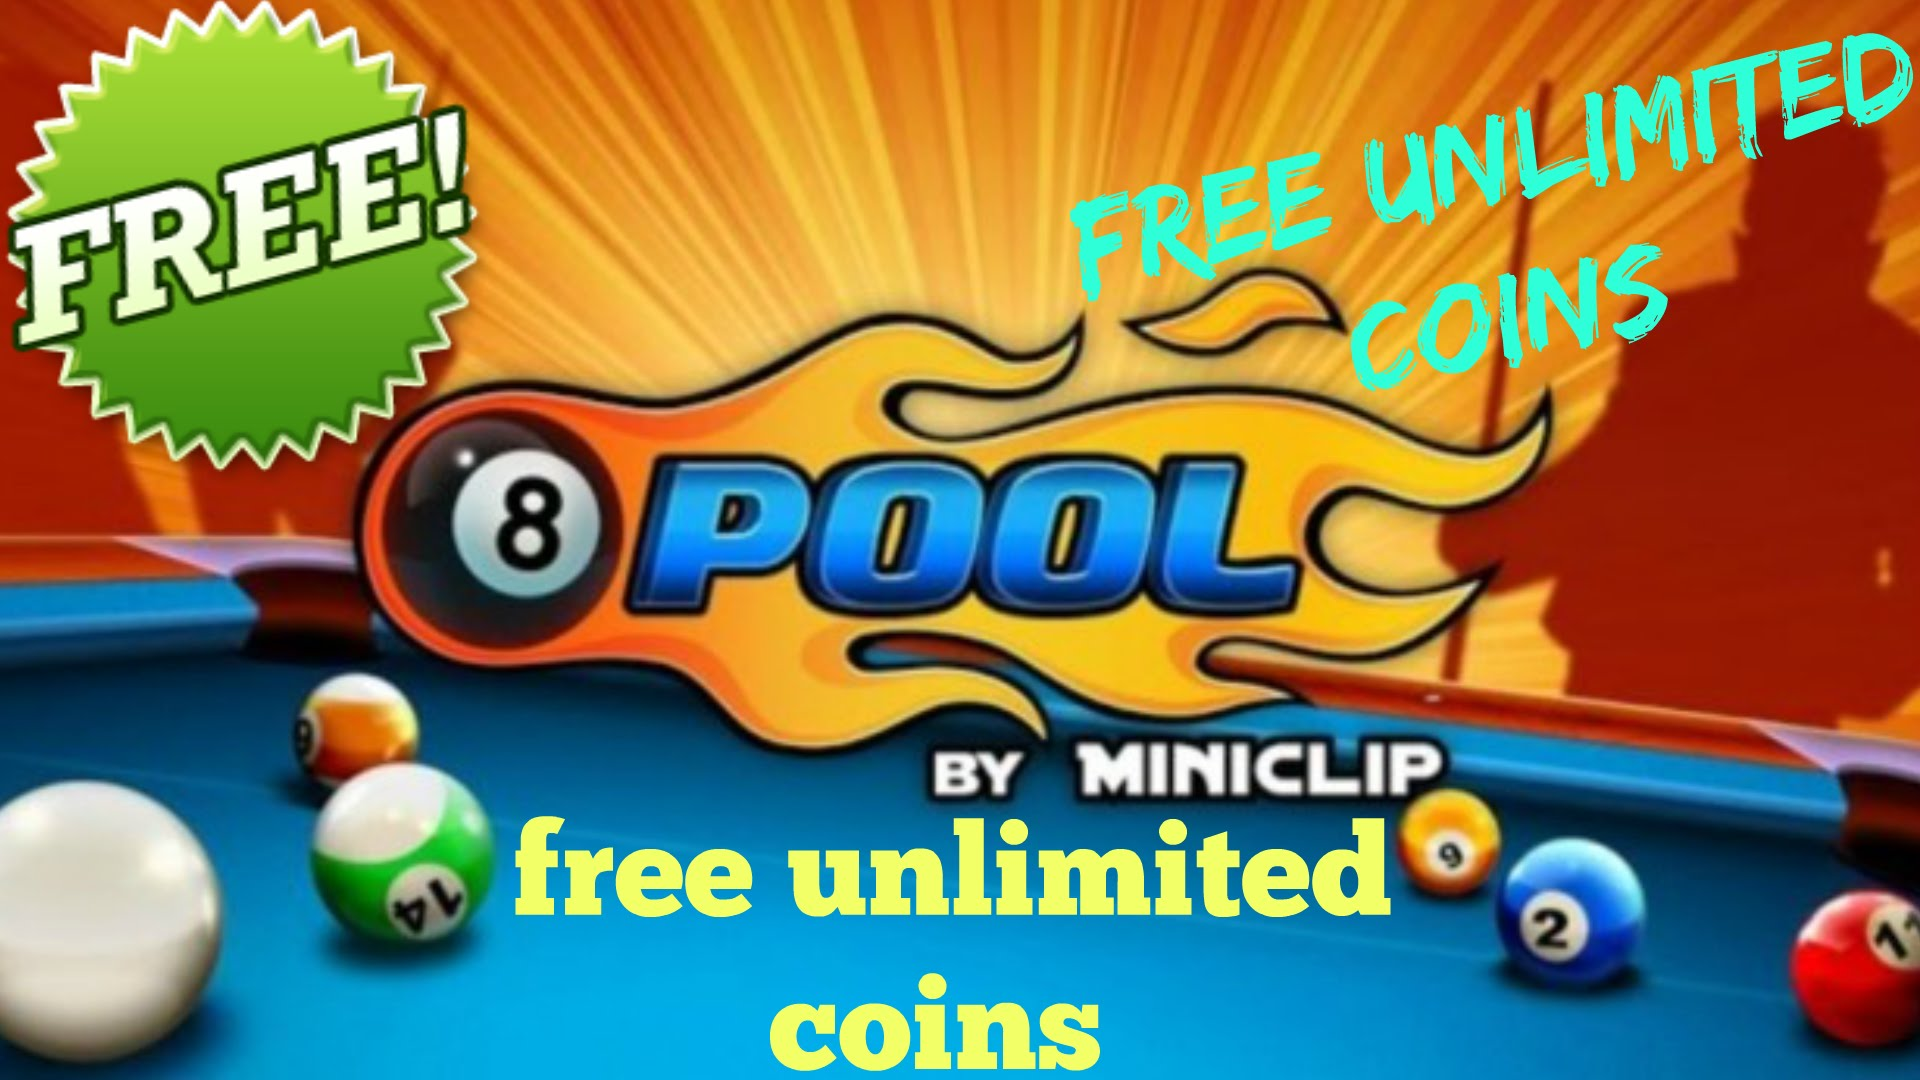 【INJECTHACK.COM 8 BALL POOL】 Cash and Coins FOR ANDROID IOS PC PLAYSTATION | 100% WORKING METHOD | GET UNLIMITED RESOURCES NOW